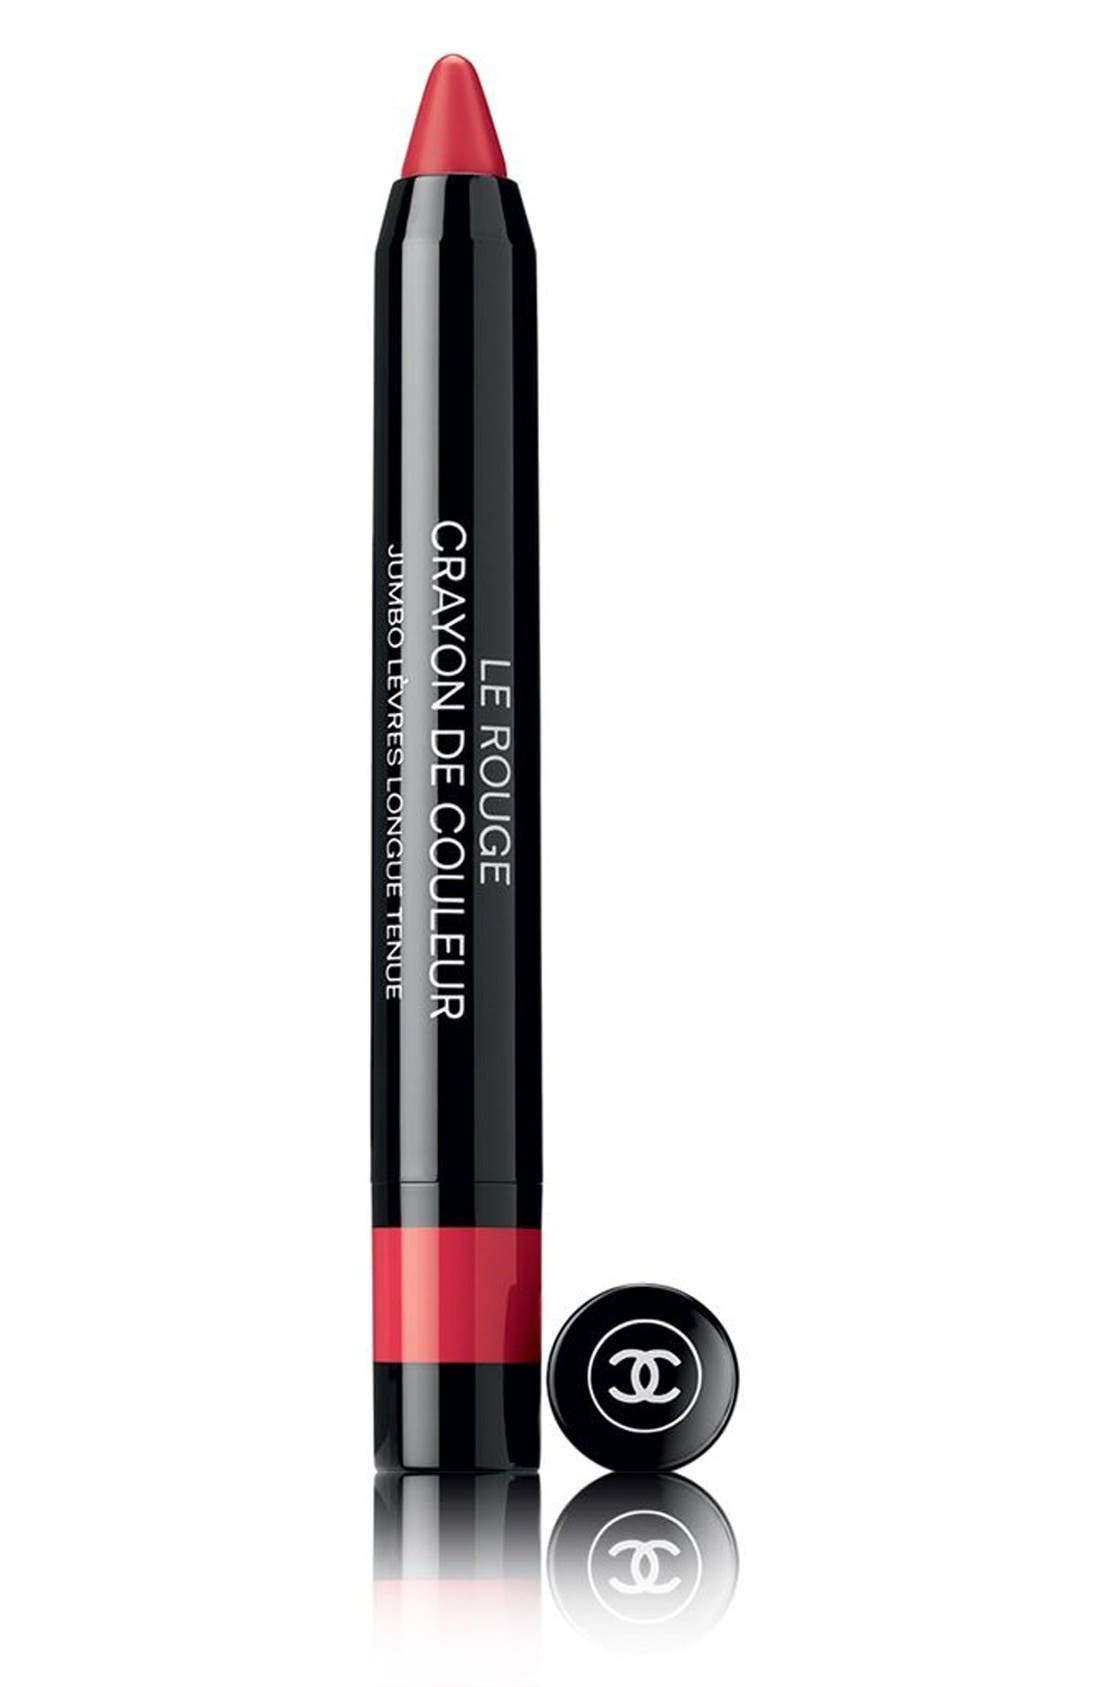 CHANEL Lipstick, Lip Gloss, u0026 More  Nordstrom